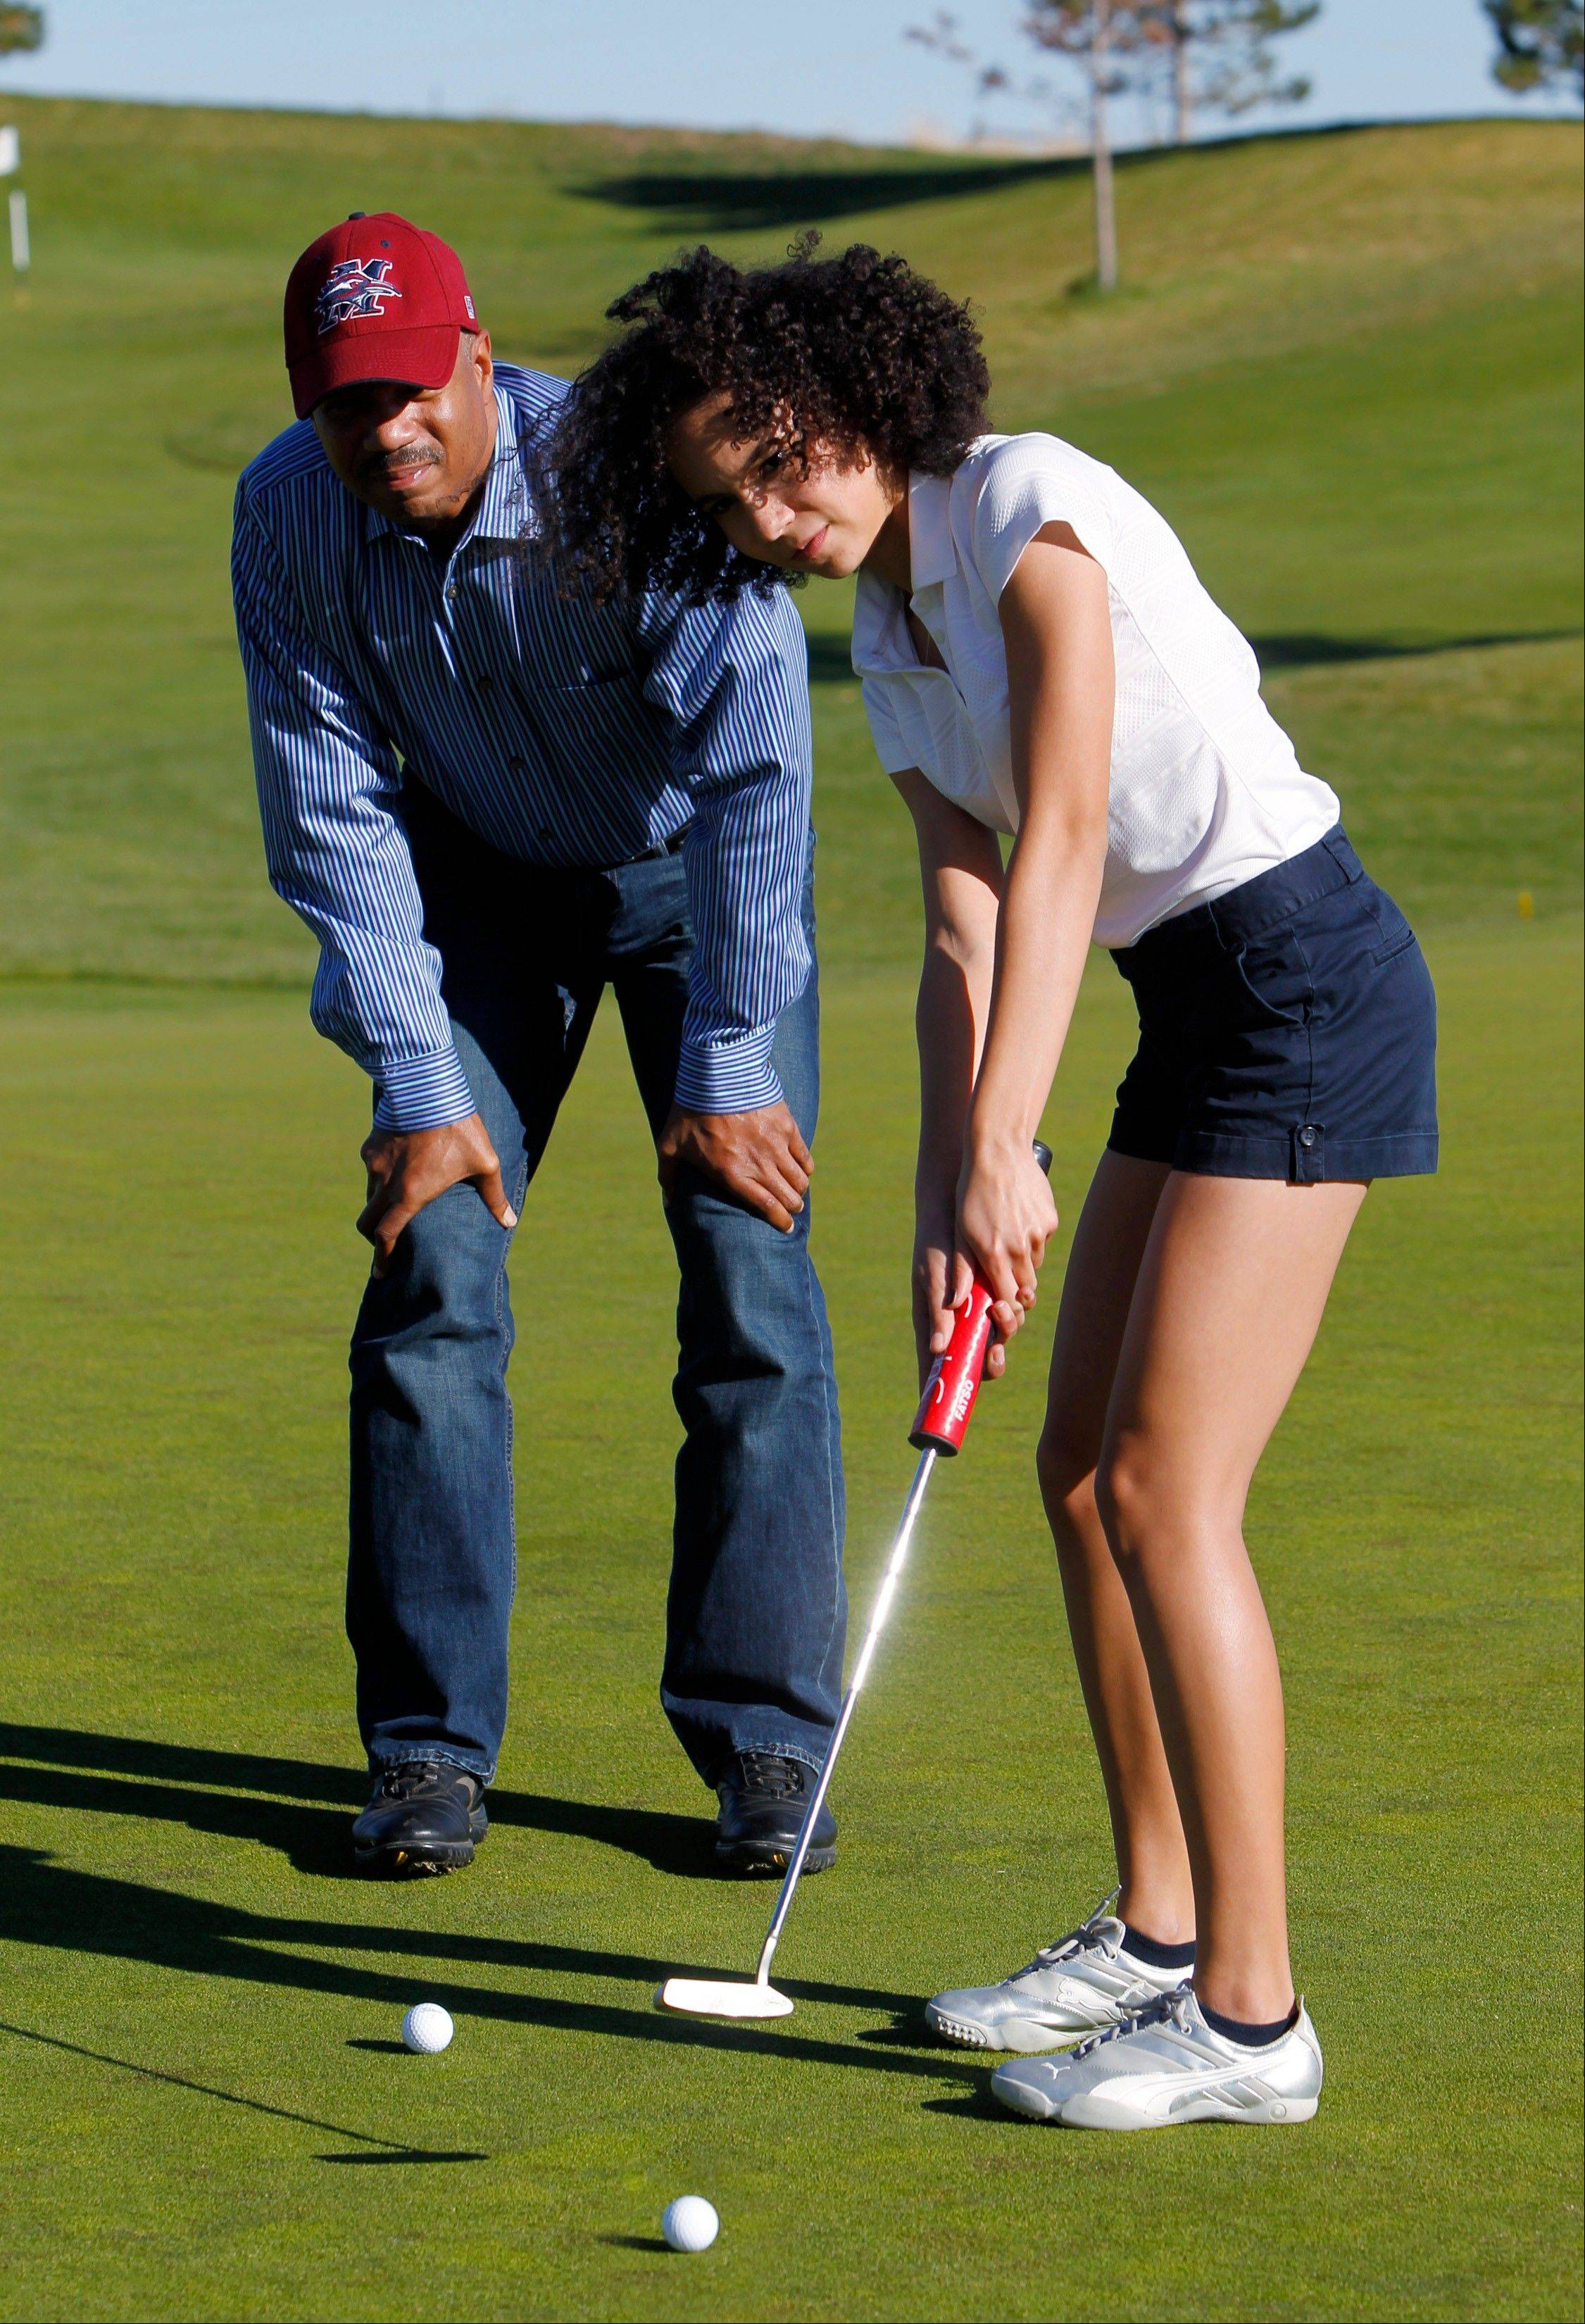 Shawn Worthy watches as his 16-year-old daughter Soleil practices putting at a golf course near their home in Aurora, Colo. Worthy, a professor at Metropolitan State University of Denver with an interest in sports psychology, questions the extreme emphasis that parents put on youth in sports.